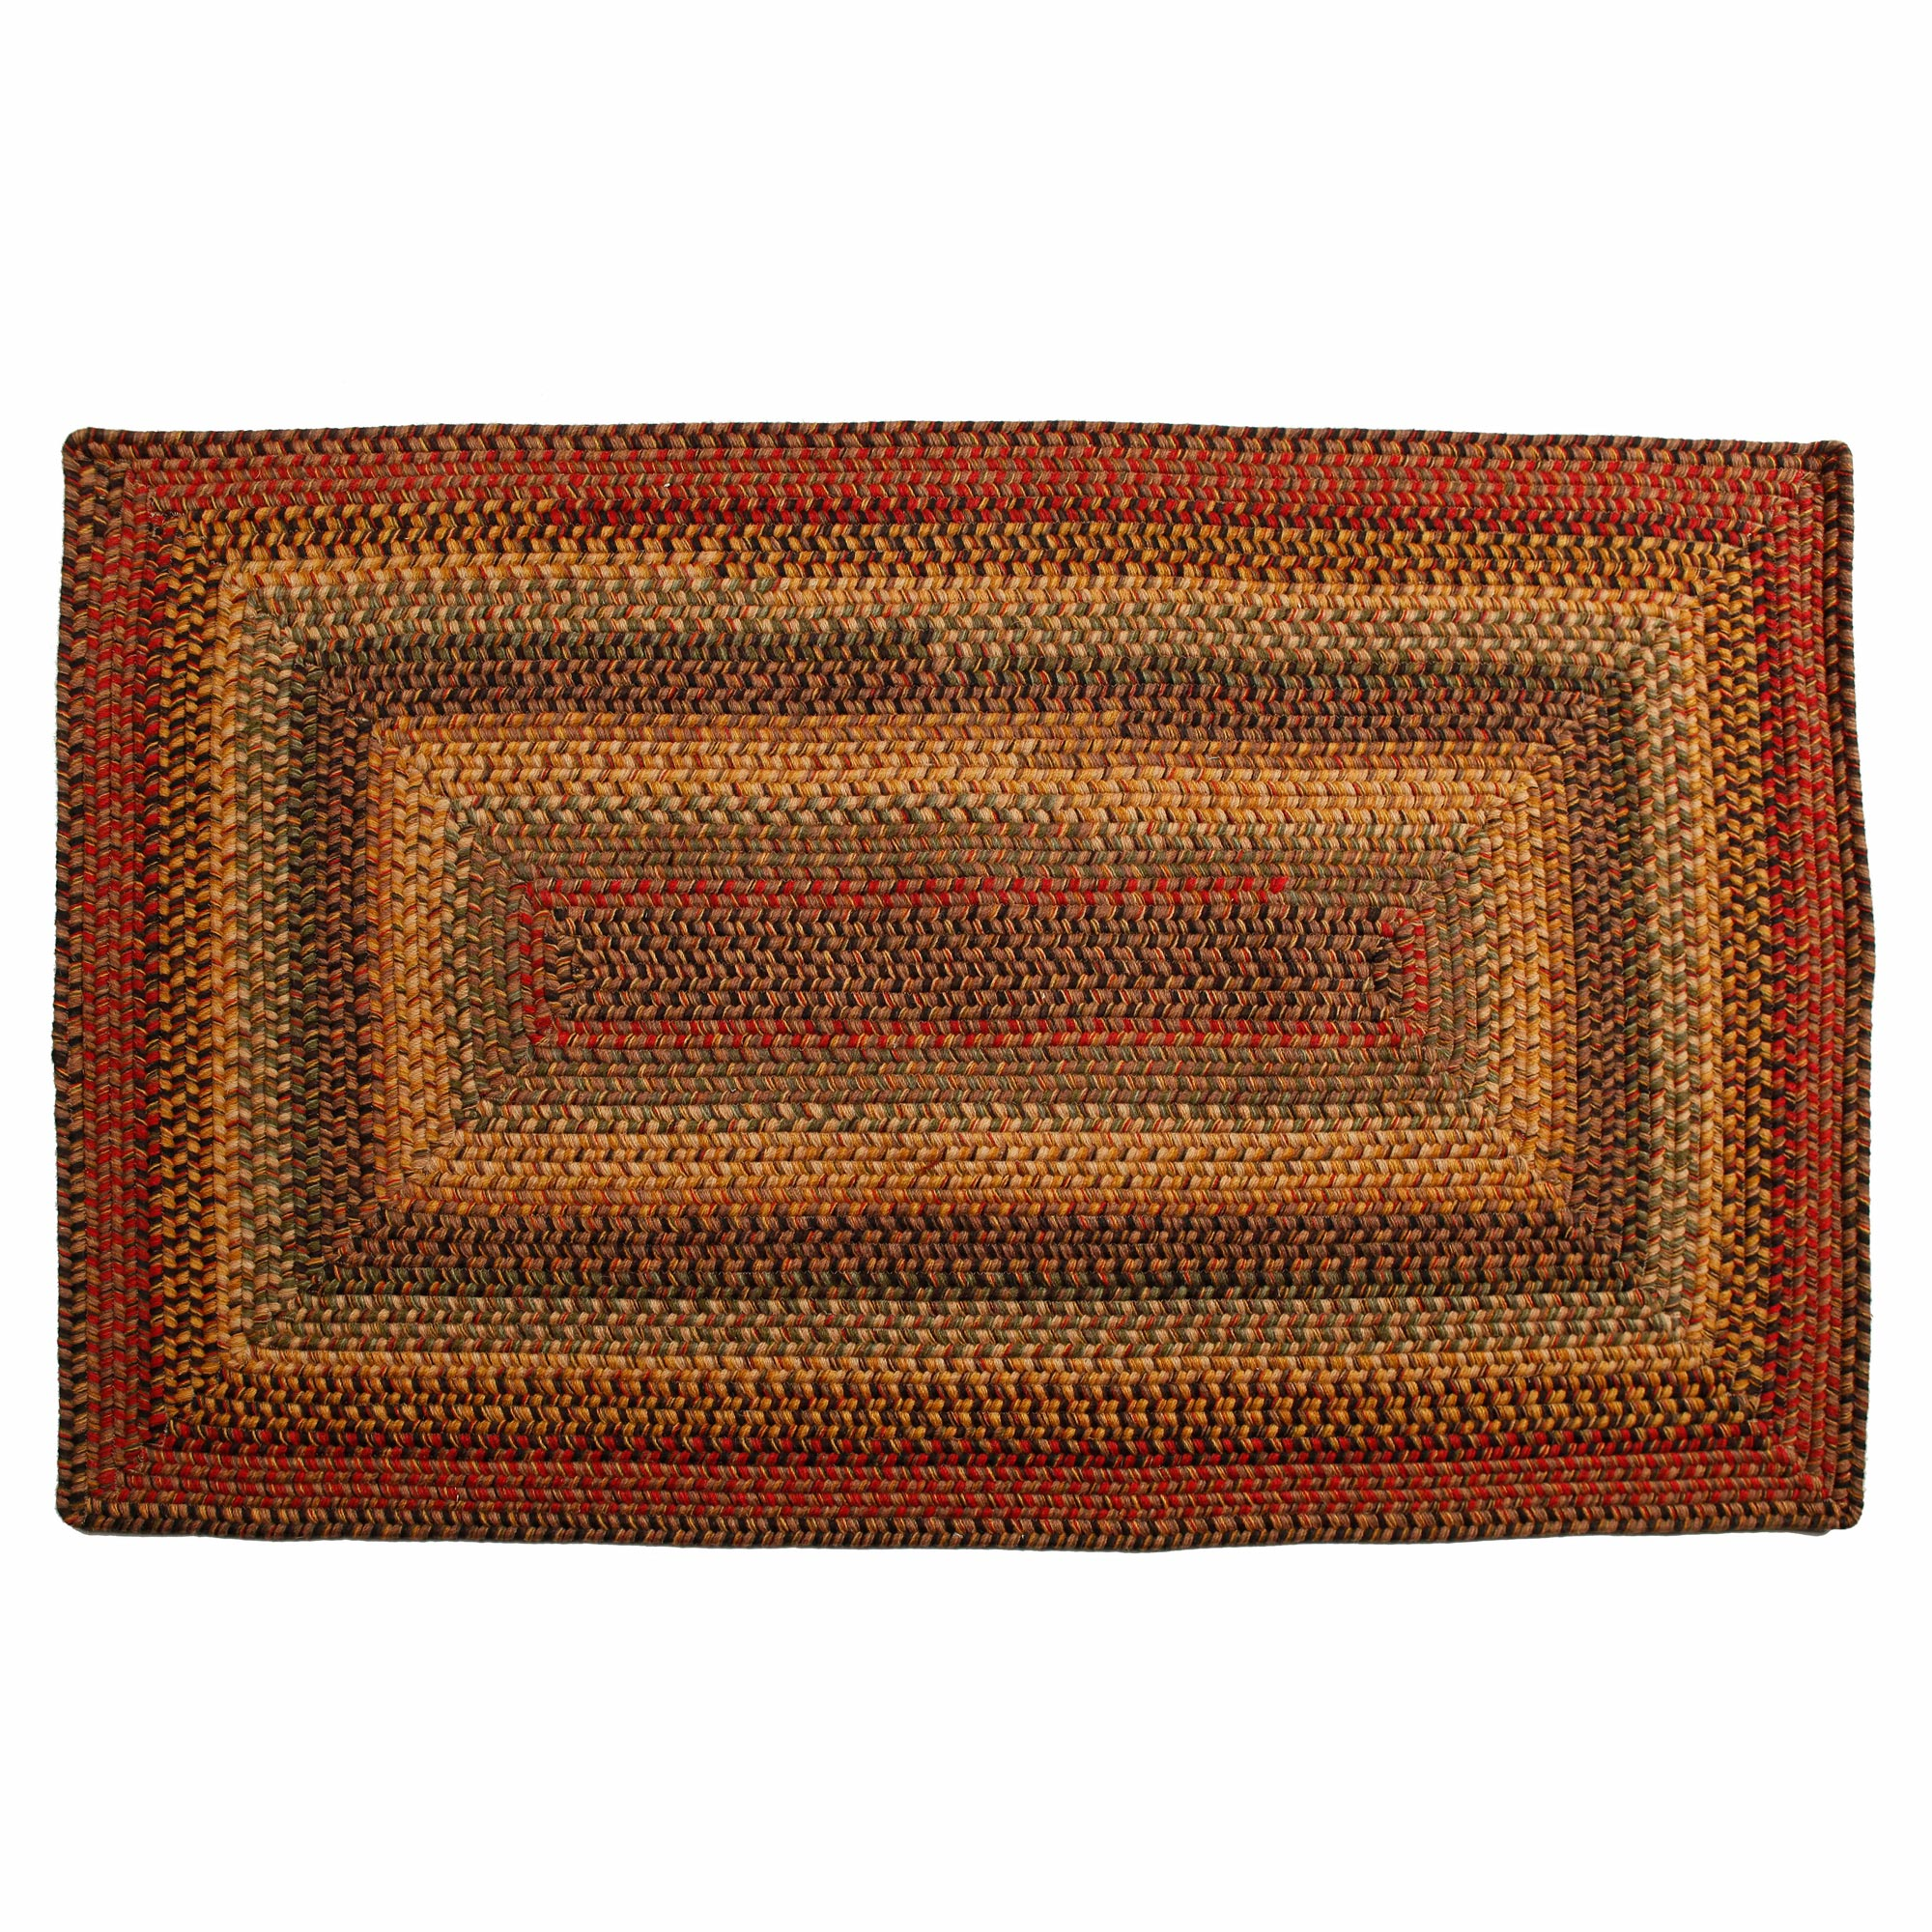 Braided Rugs: Homespice Primitive Wool Braided Area Rugs Oval Rectangle